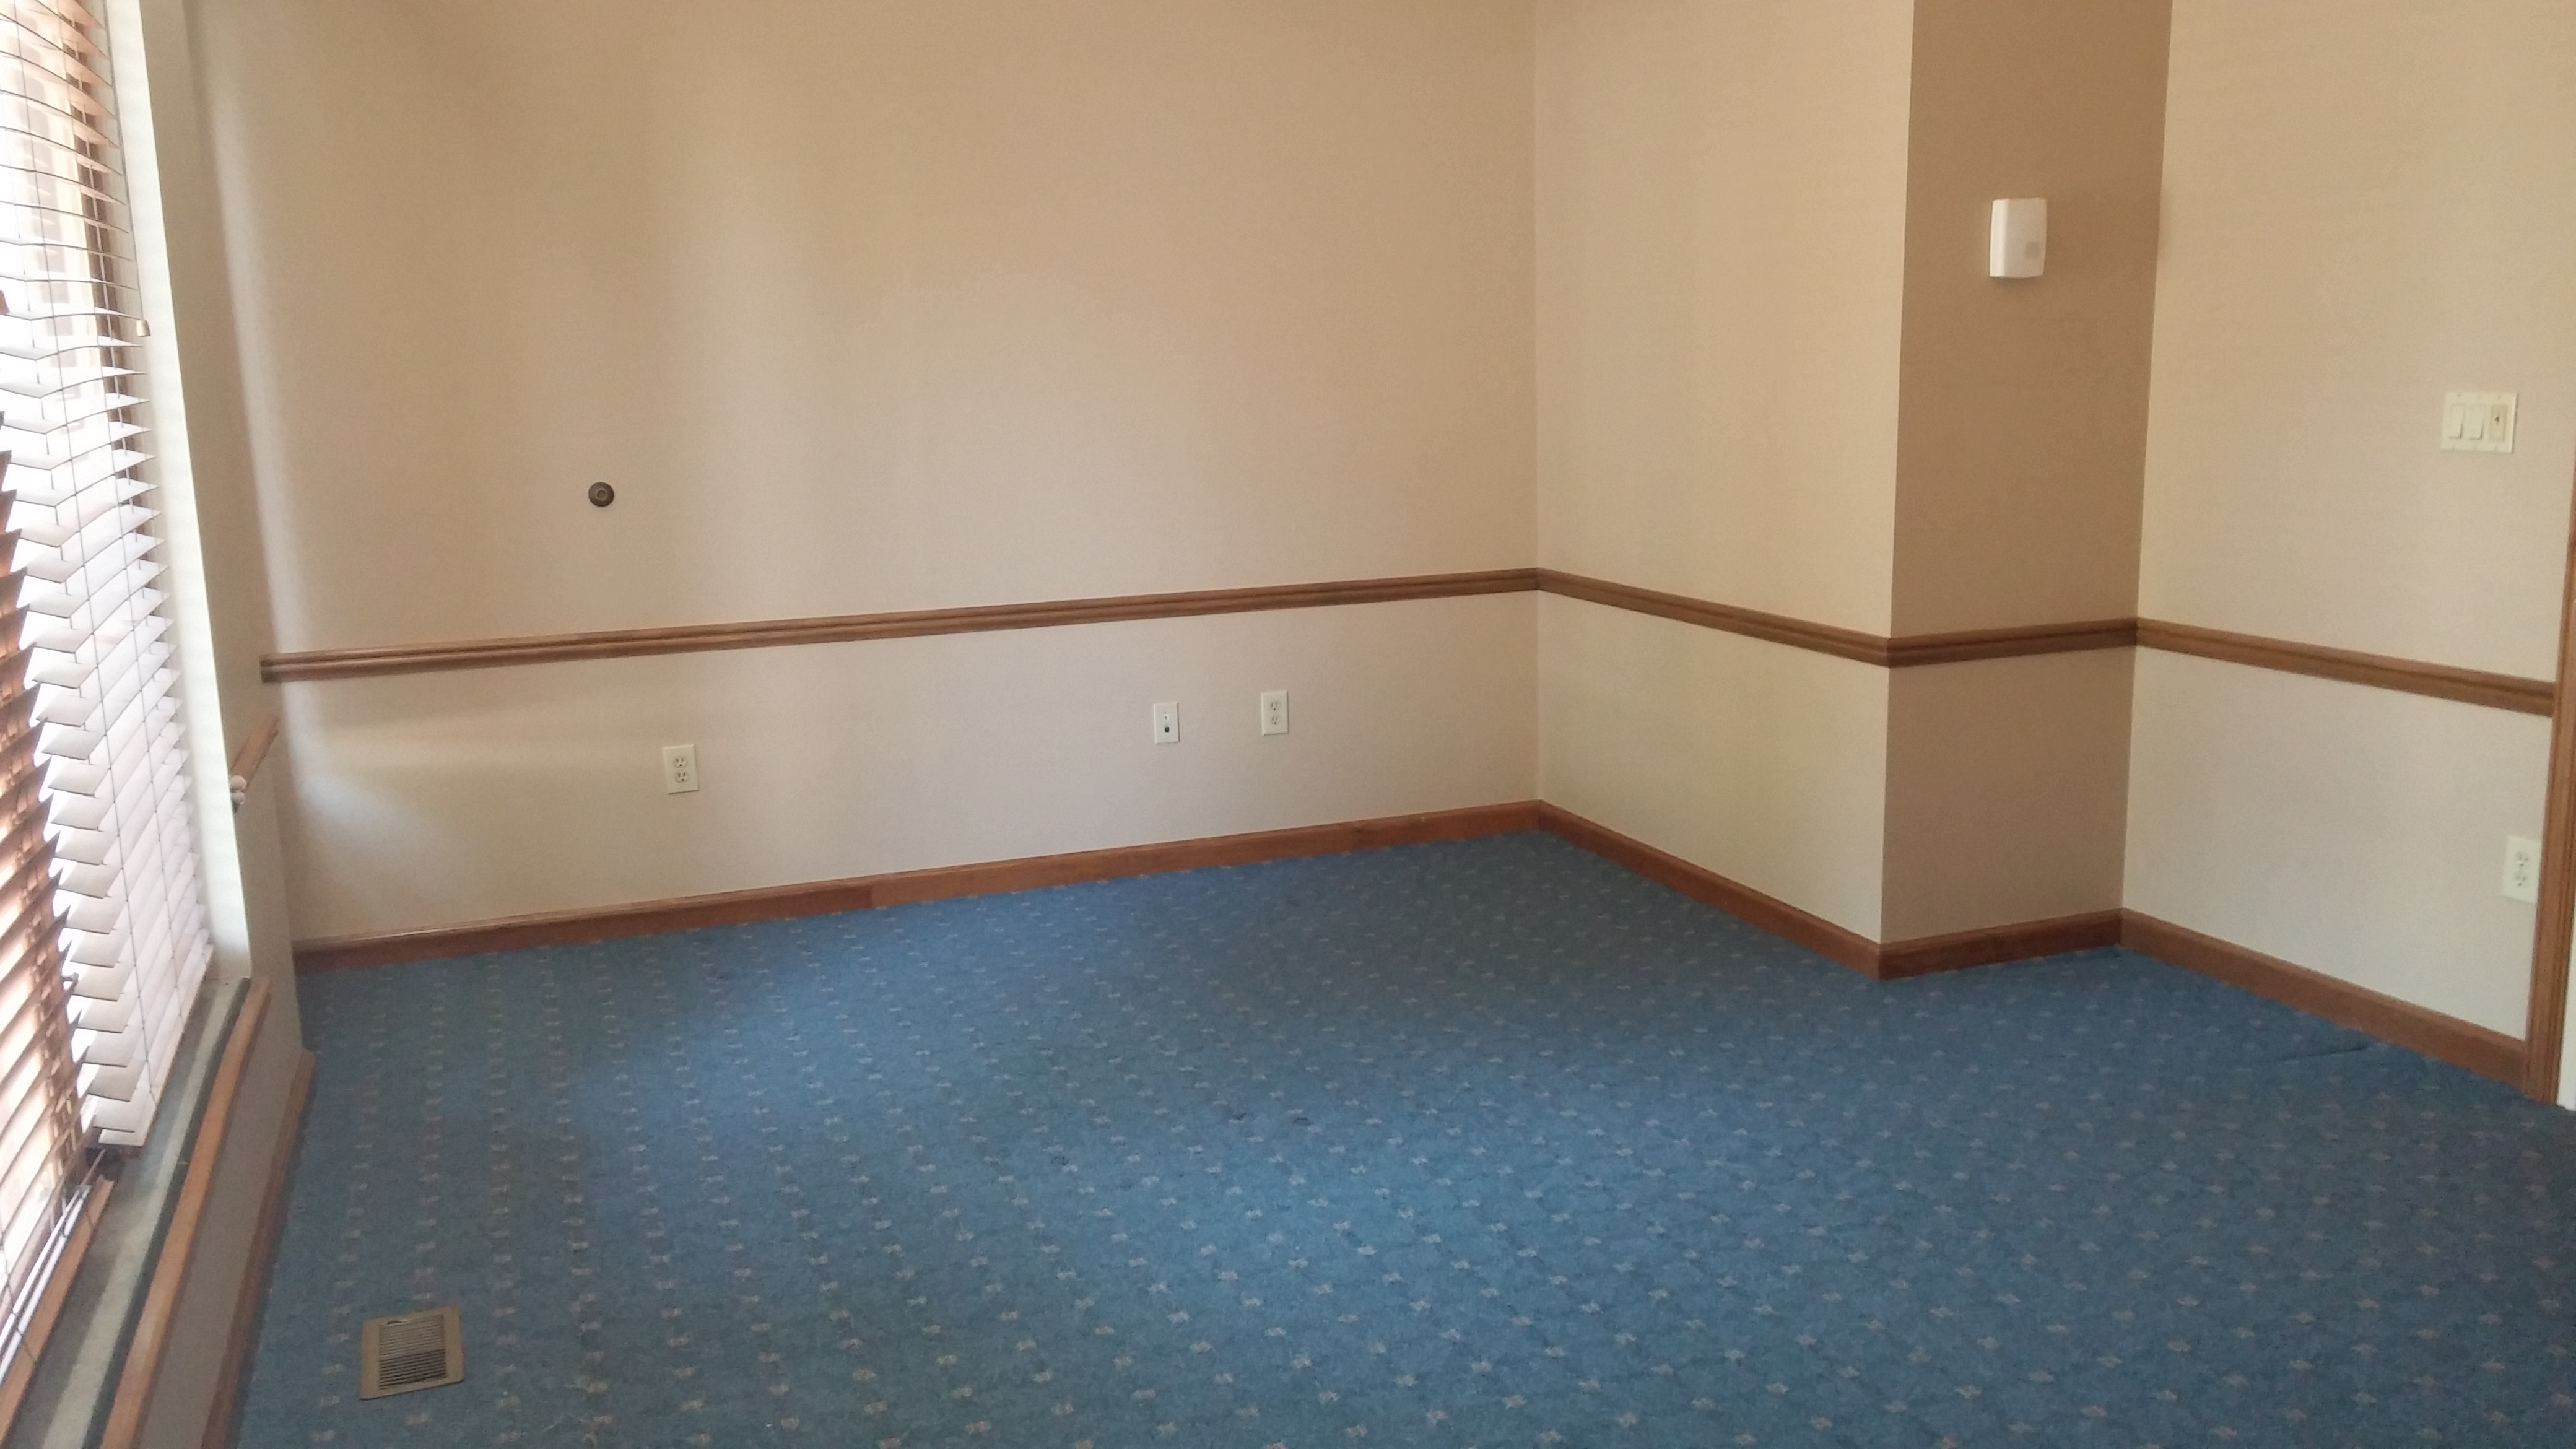 Floor 1 – 267 sq ft